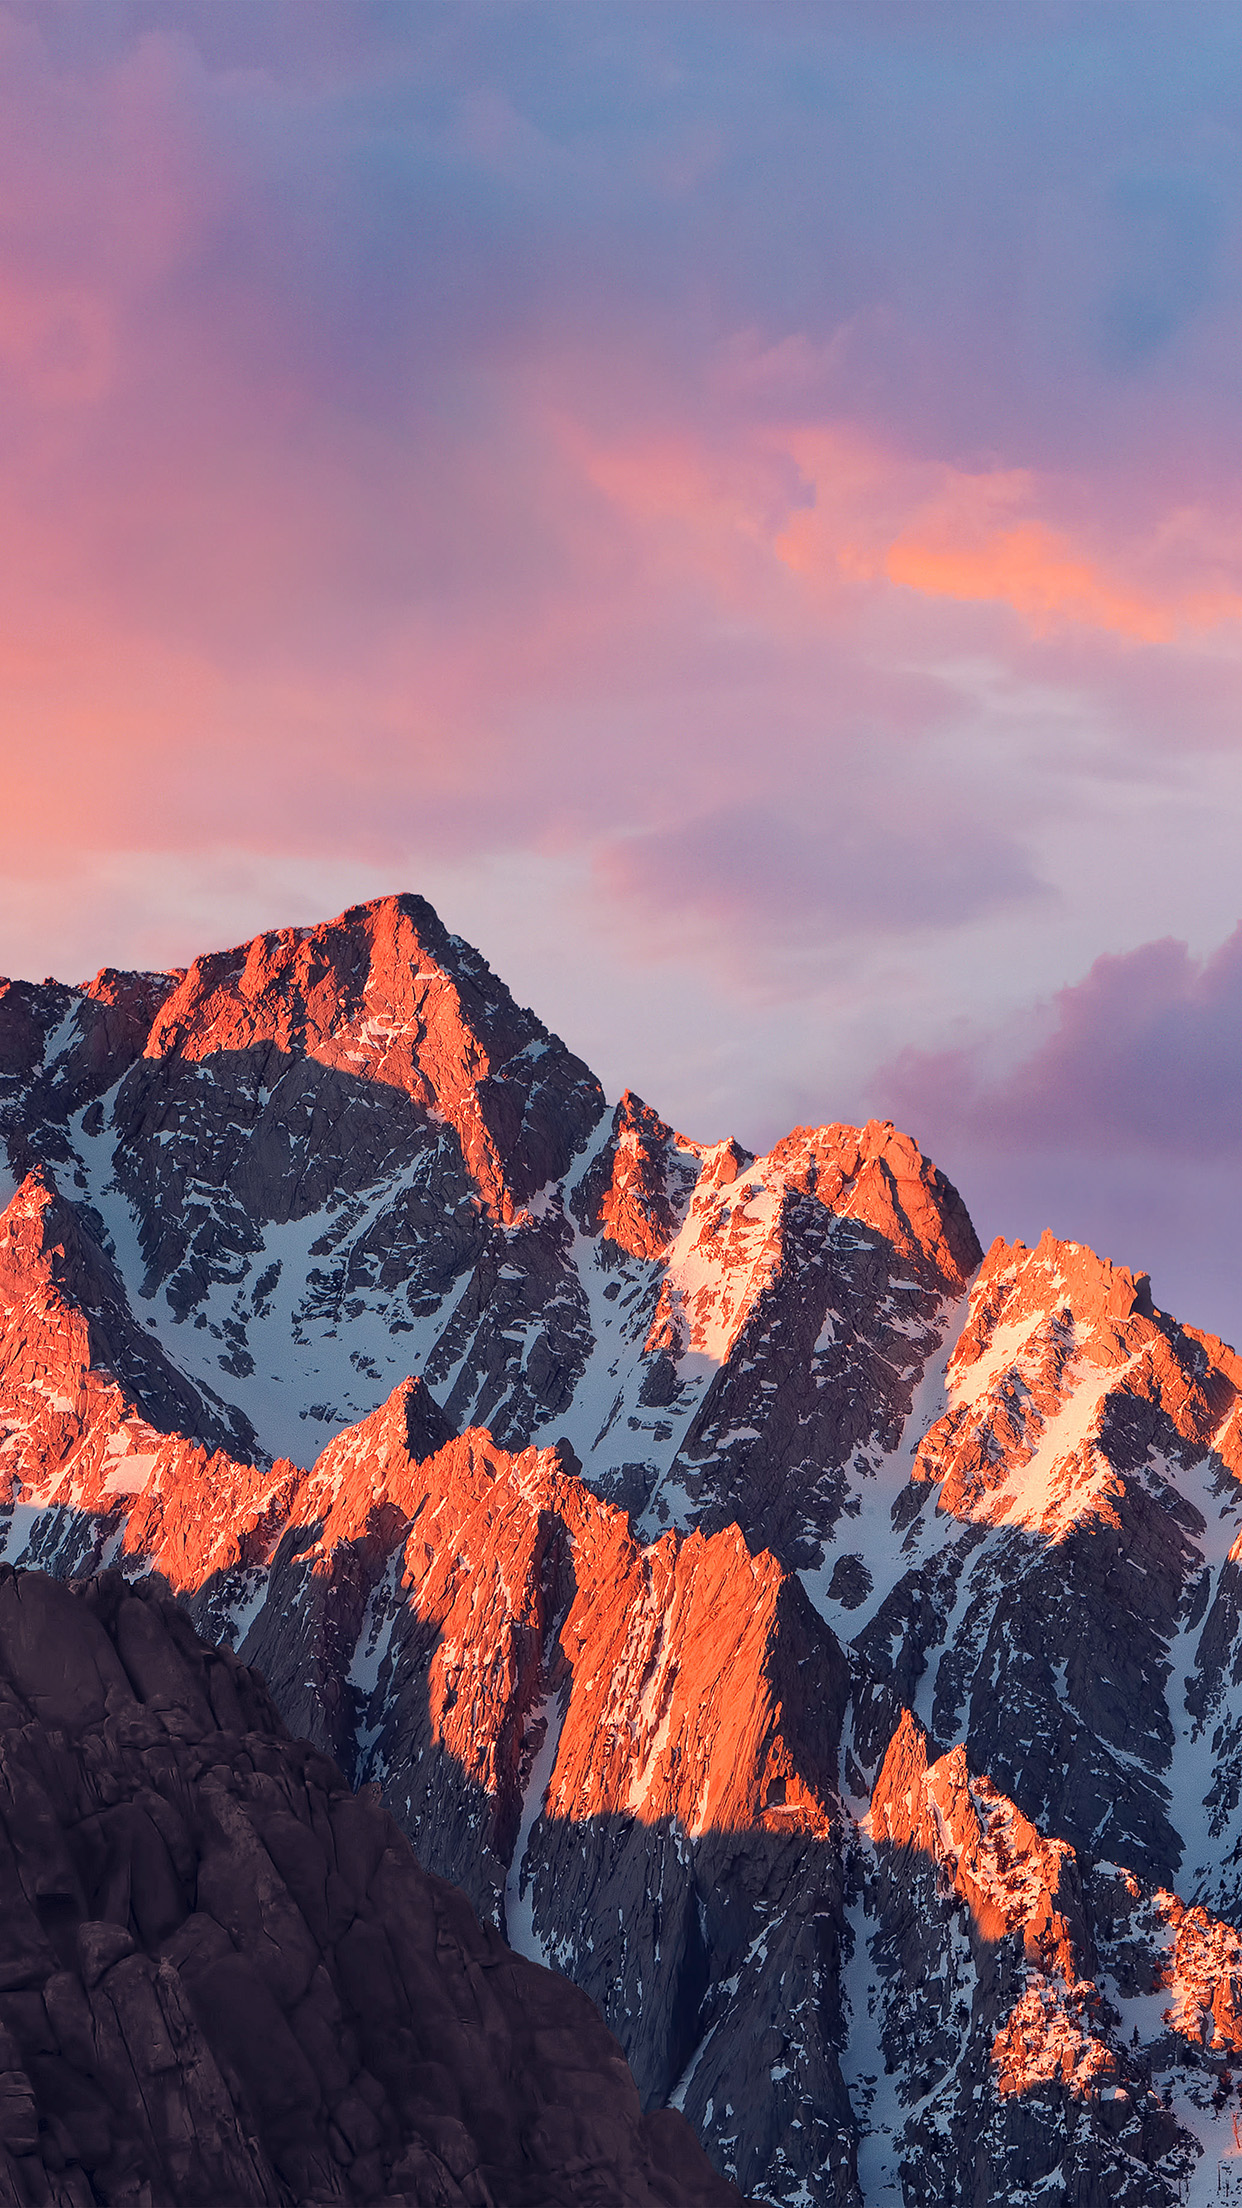 Quotes Wallpaper About Love 4k Sierra Apple Wallpaper Art Mountain Sunset Android